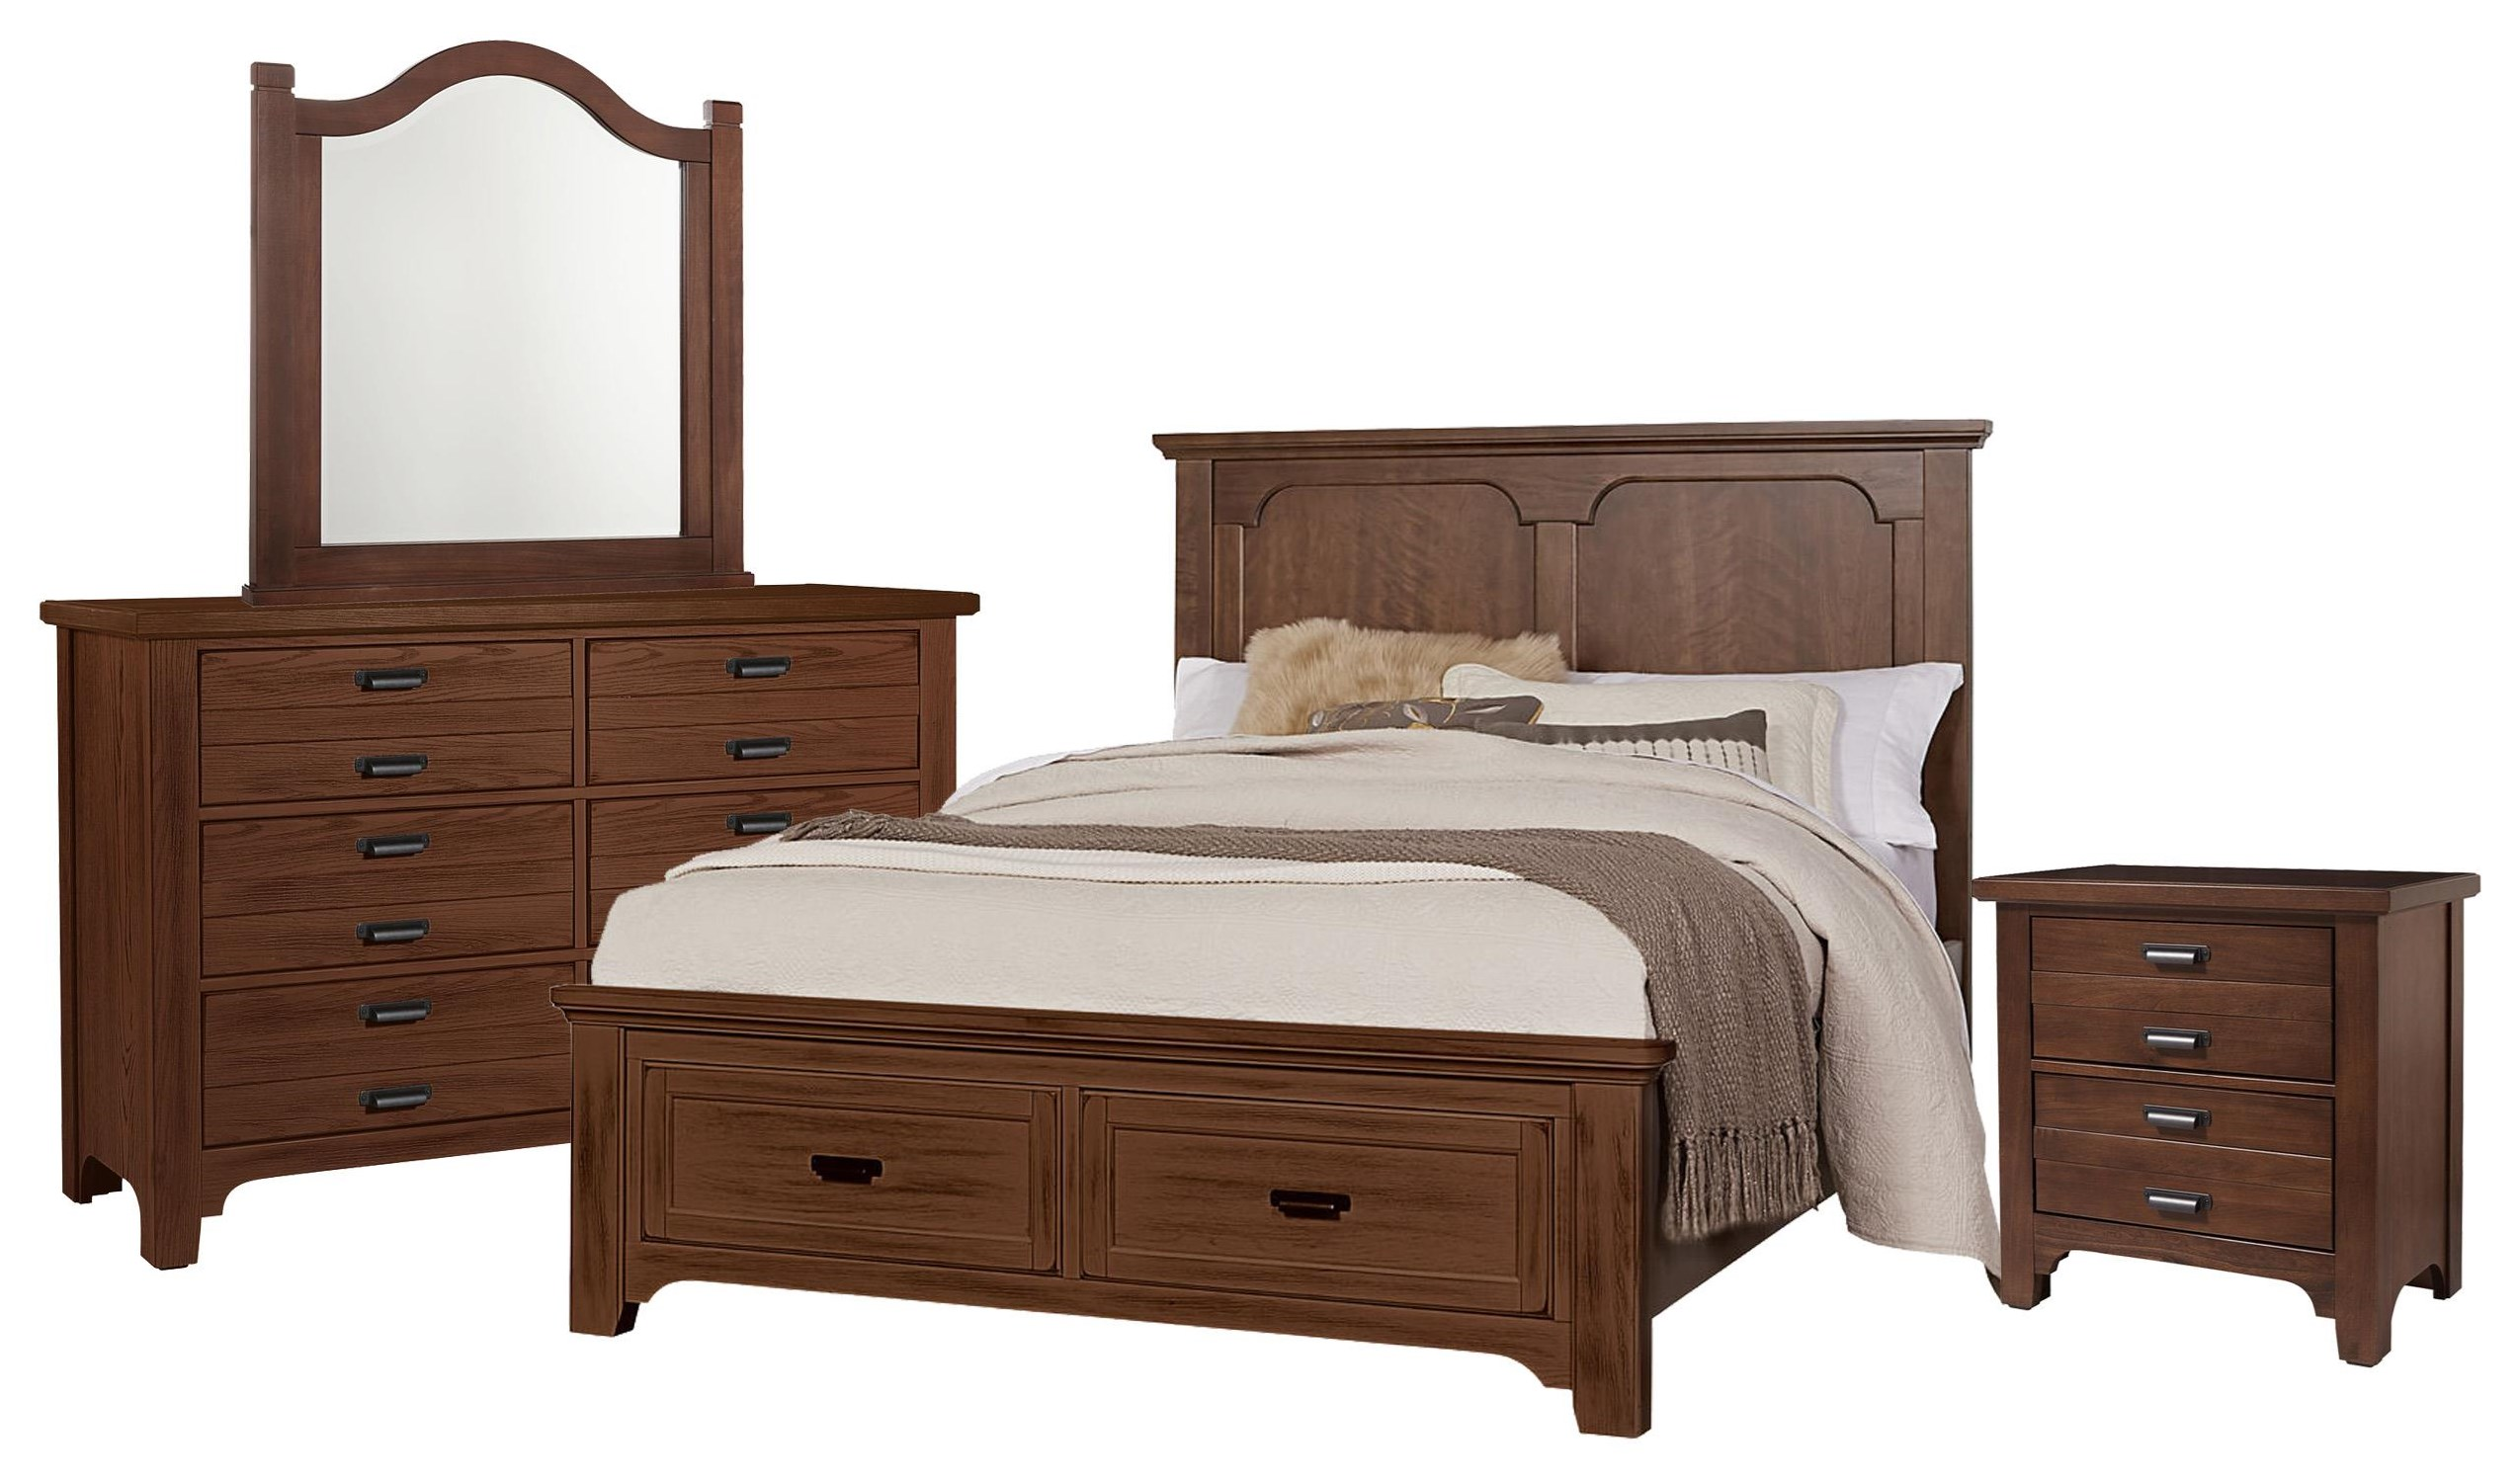 Bungalo Home Queen Panel Storage Bed, Dresser, Mirror, Ni by Vaughan Bassett at Johnny Janosik